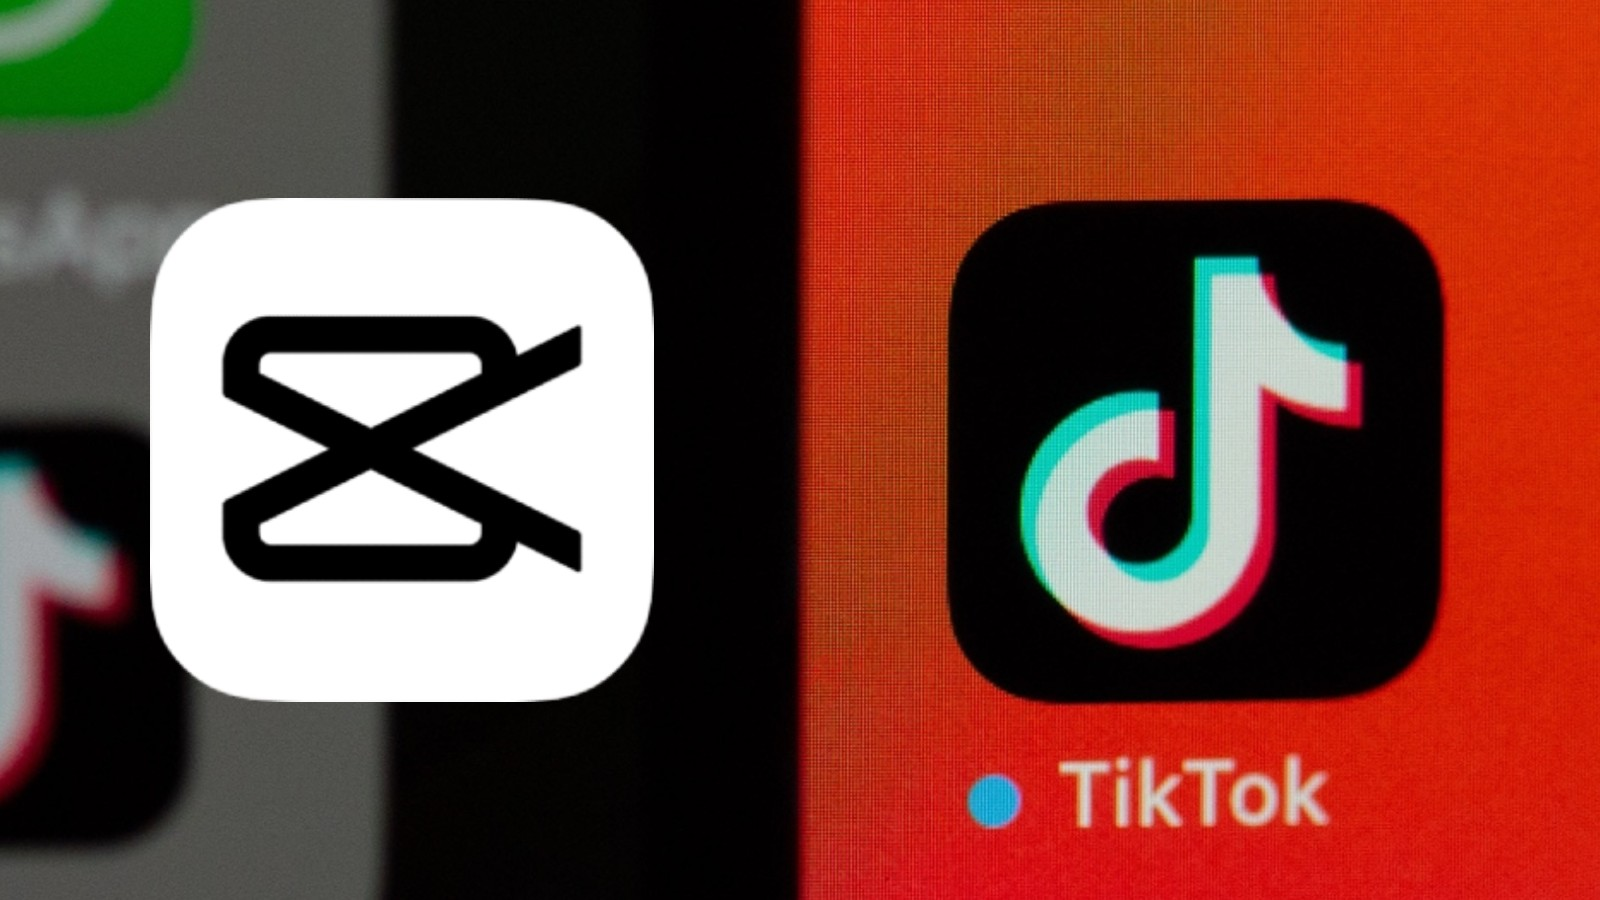 CapCut logo next to the TikTok logo